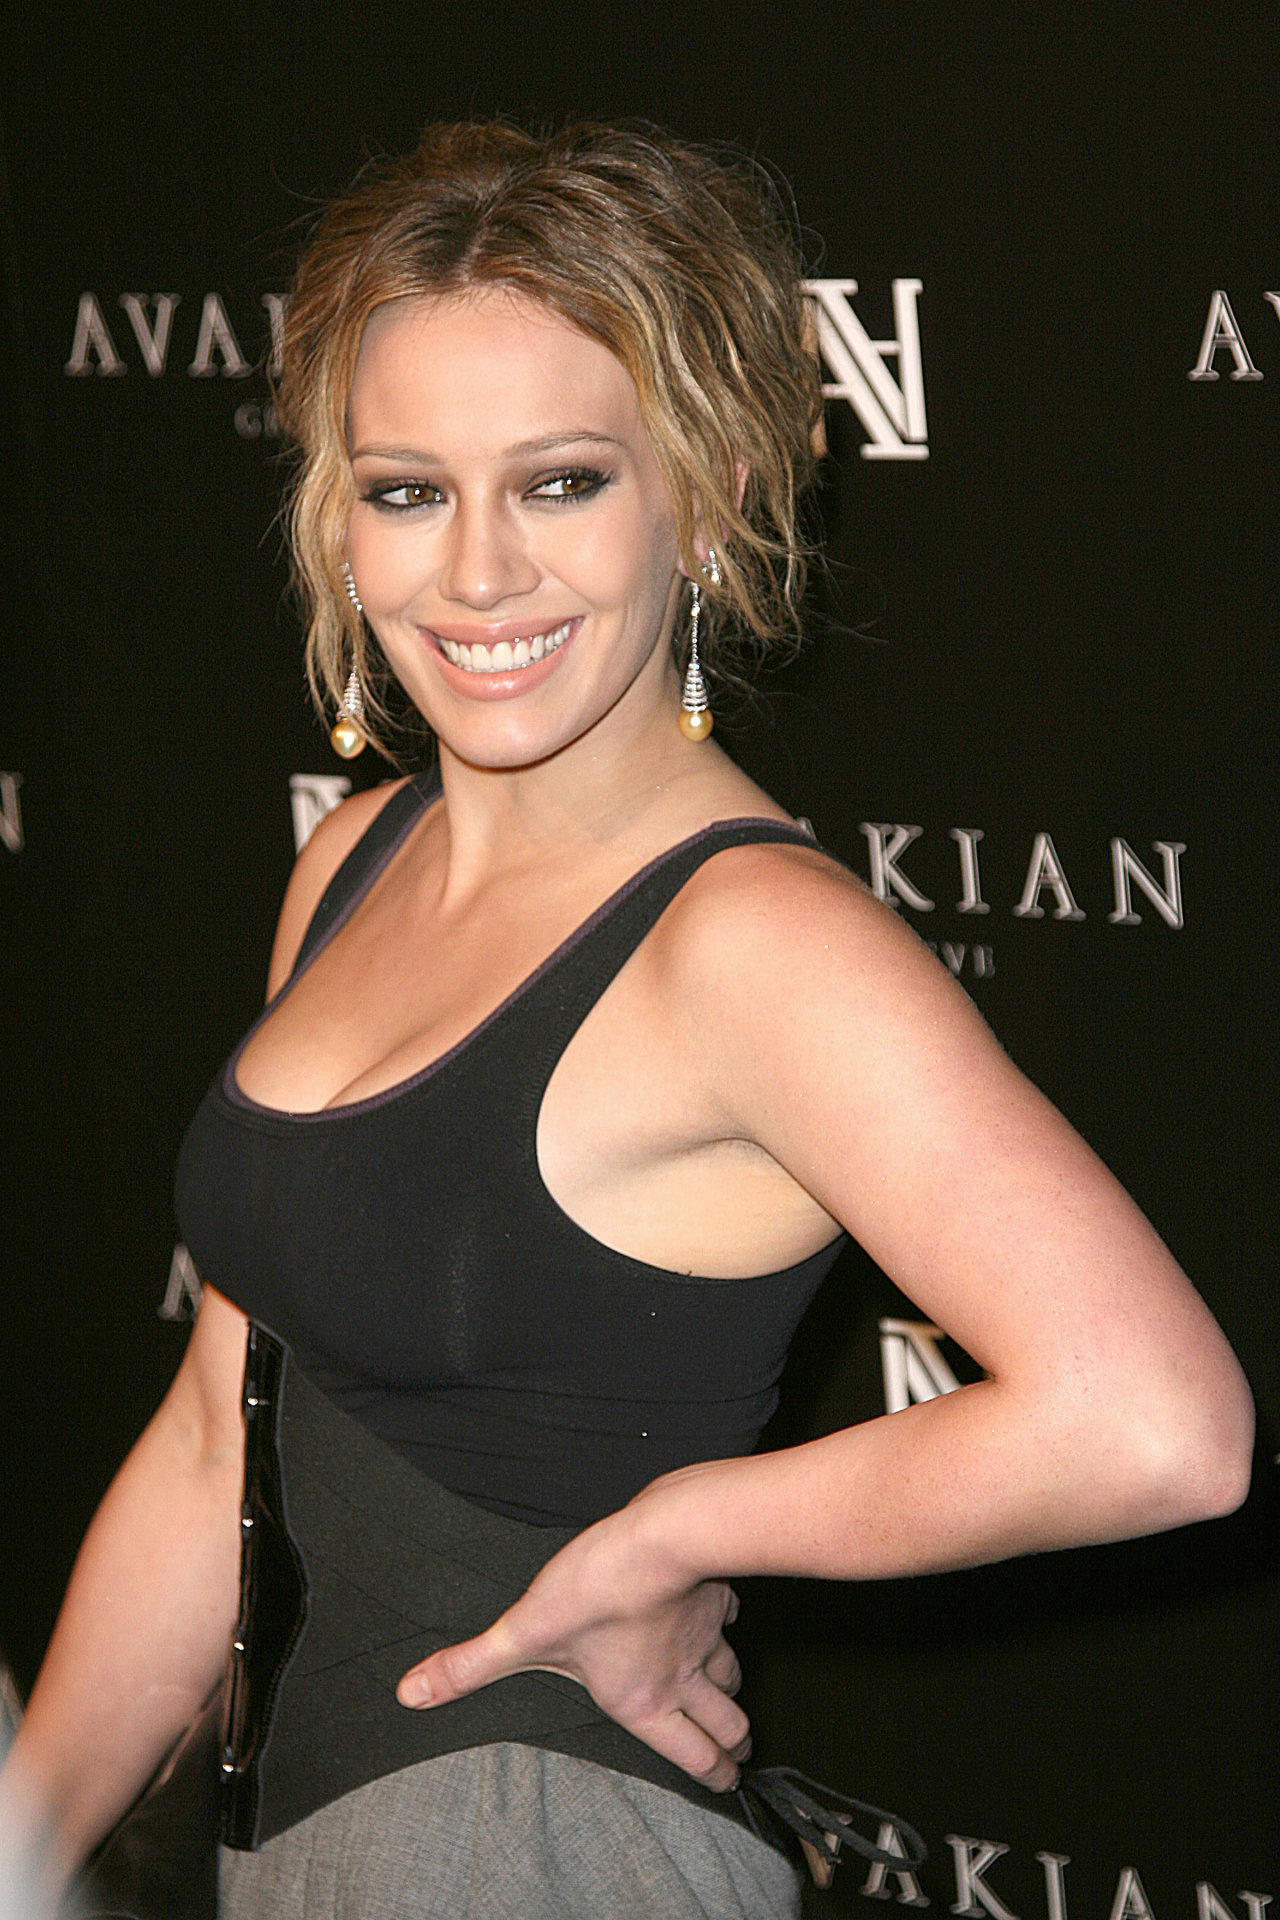 Hilary Duff leaked wallpapers